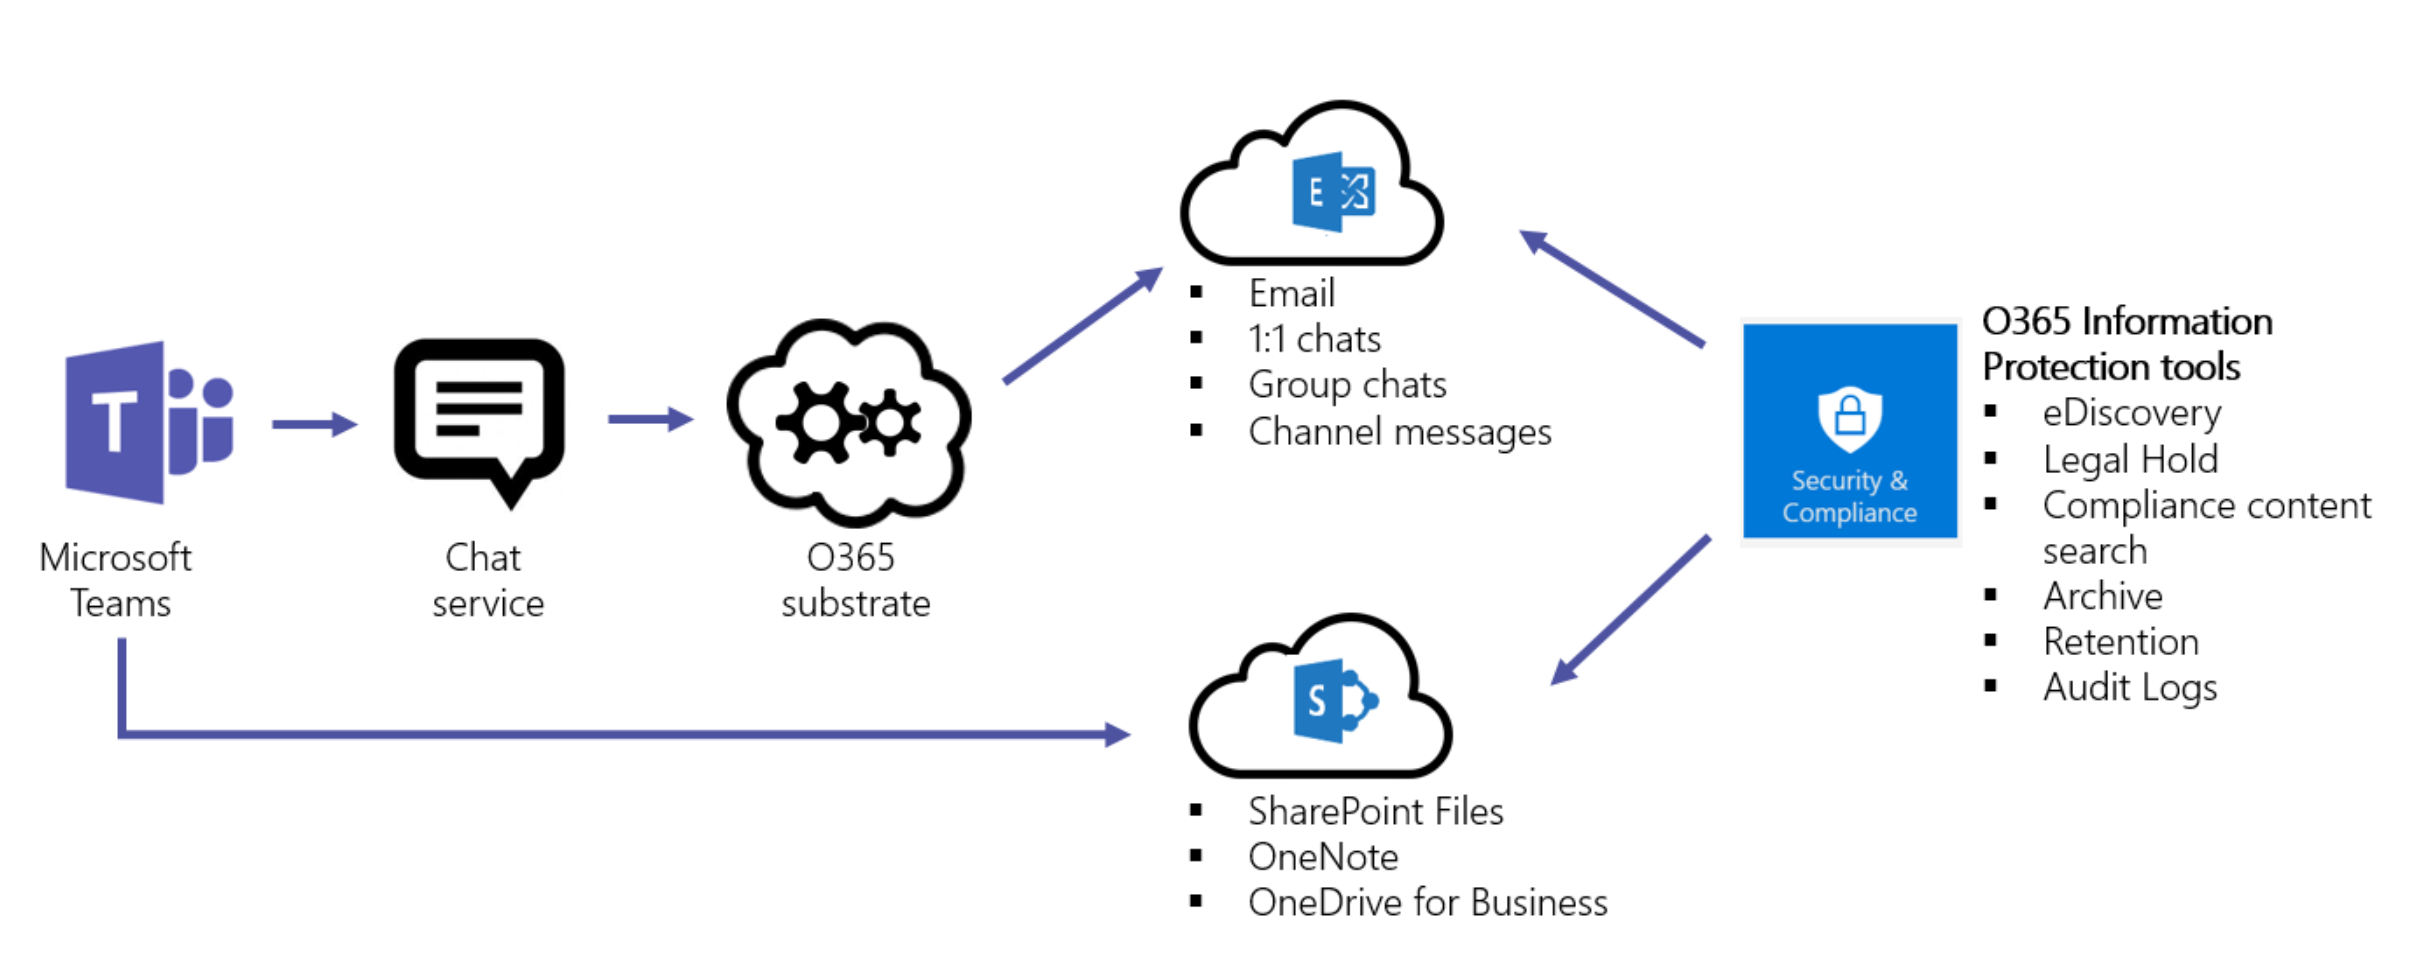 Top Features Of Microsoft Teams Amp Information Protection